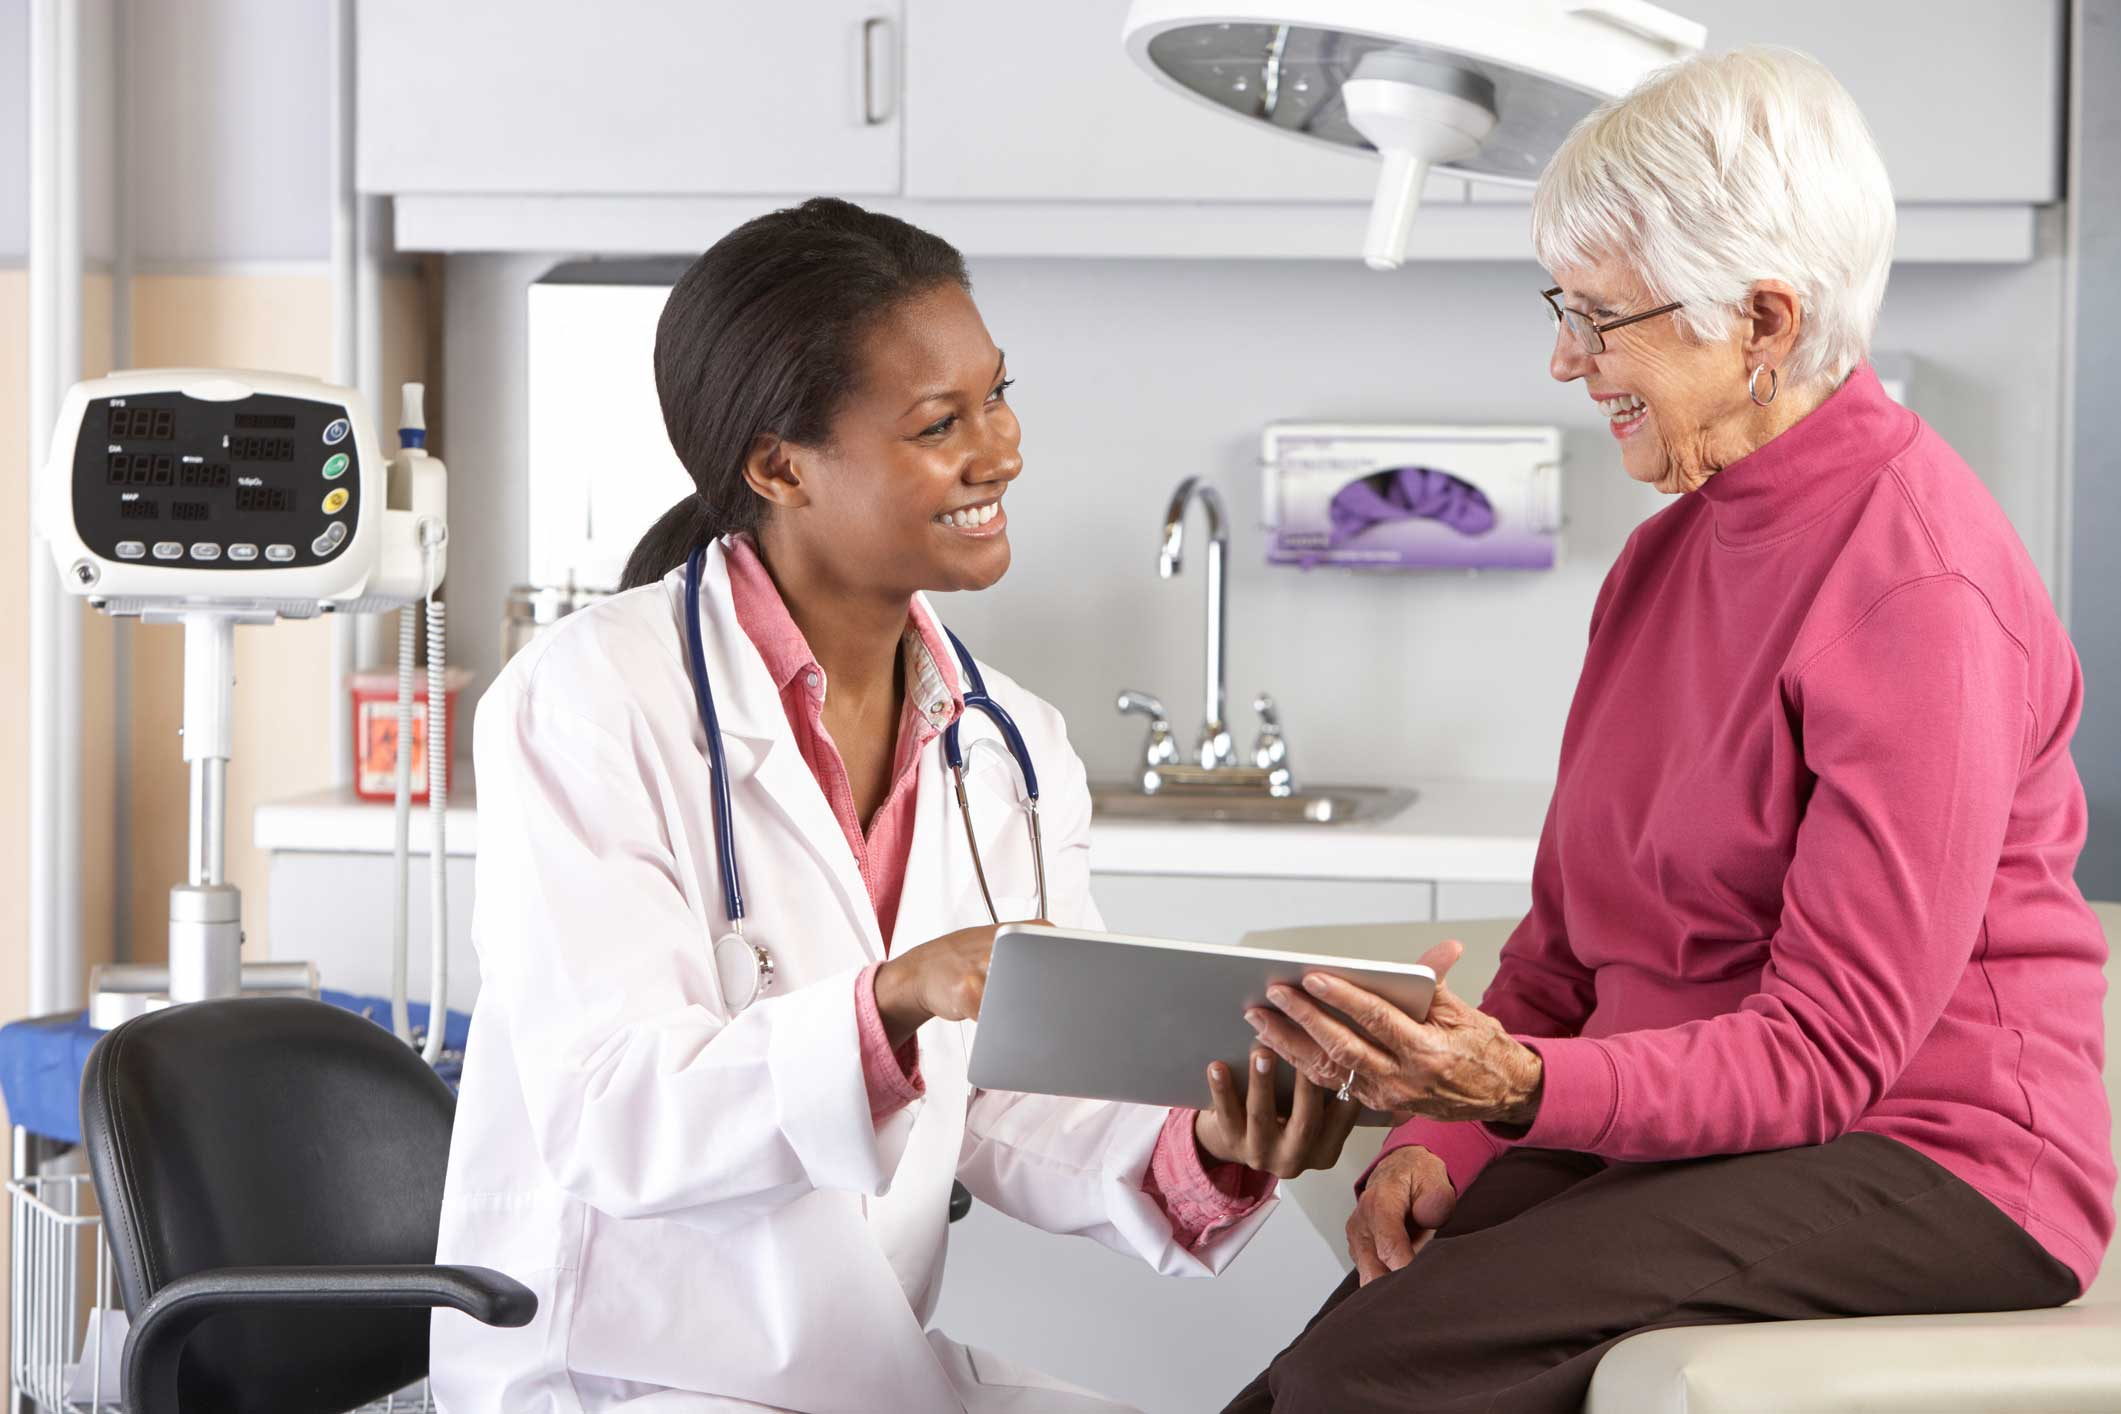 Doctor Smiling and Consulting with Senior Patient